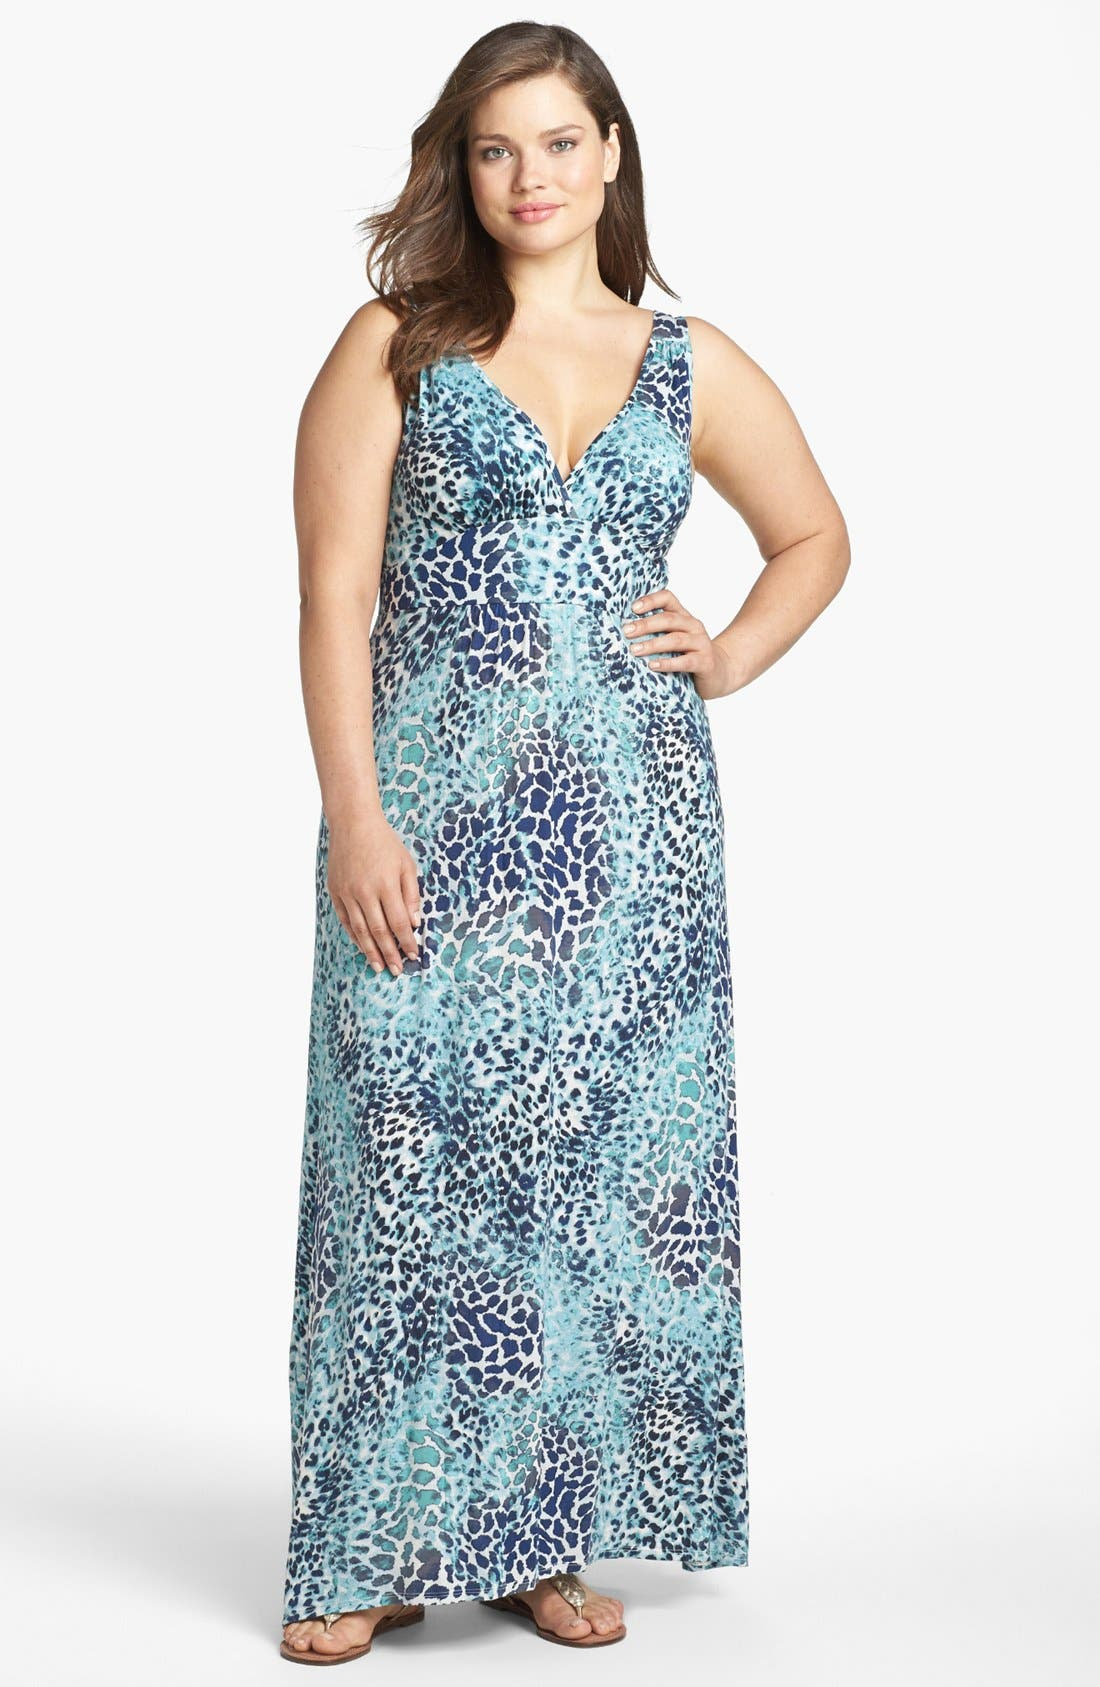 Alternate Image 1 Selected - Loveappella Print Jersey Maxi Dress (Plus Size)